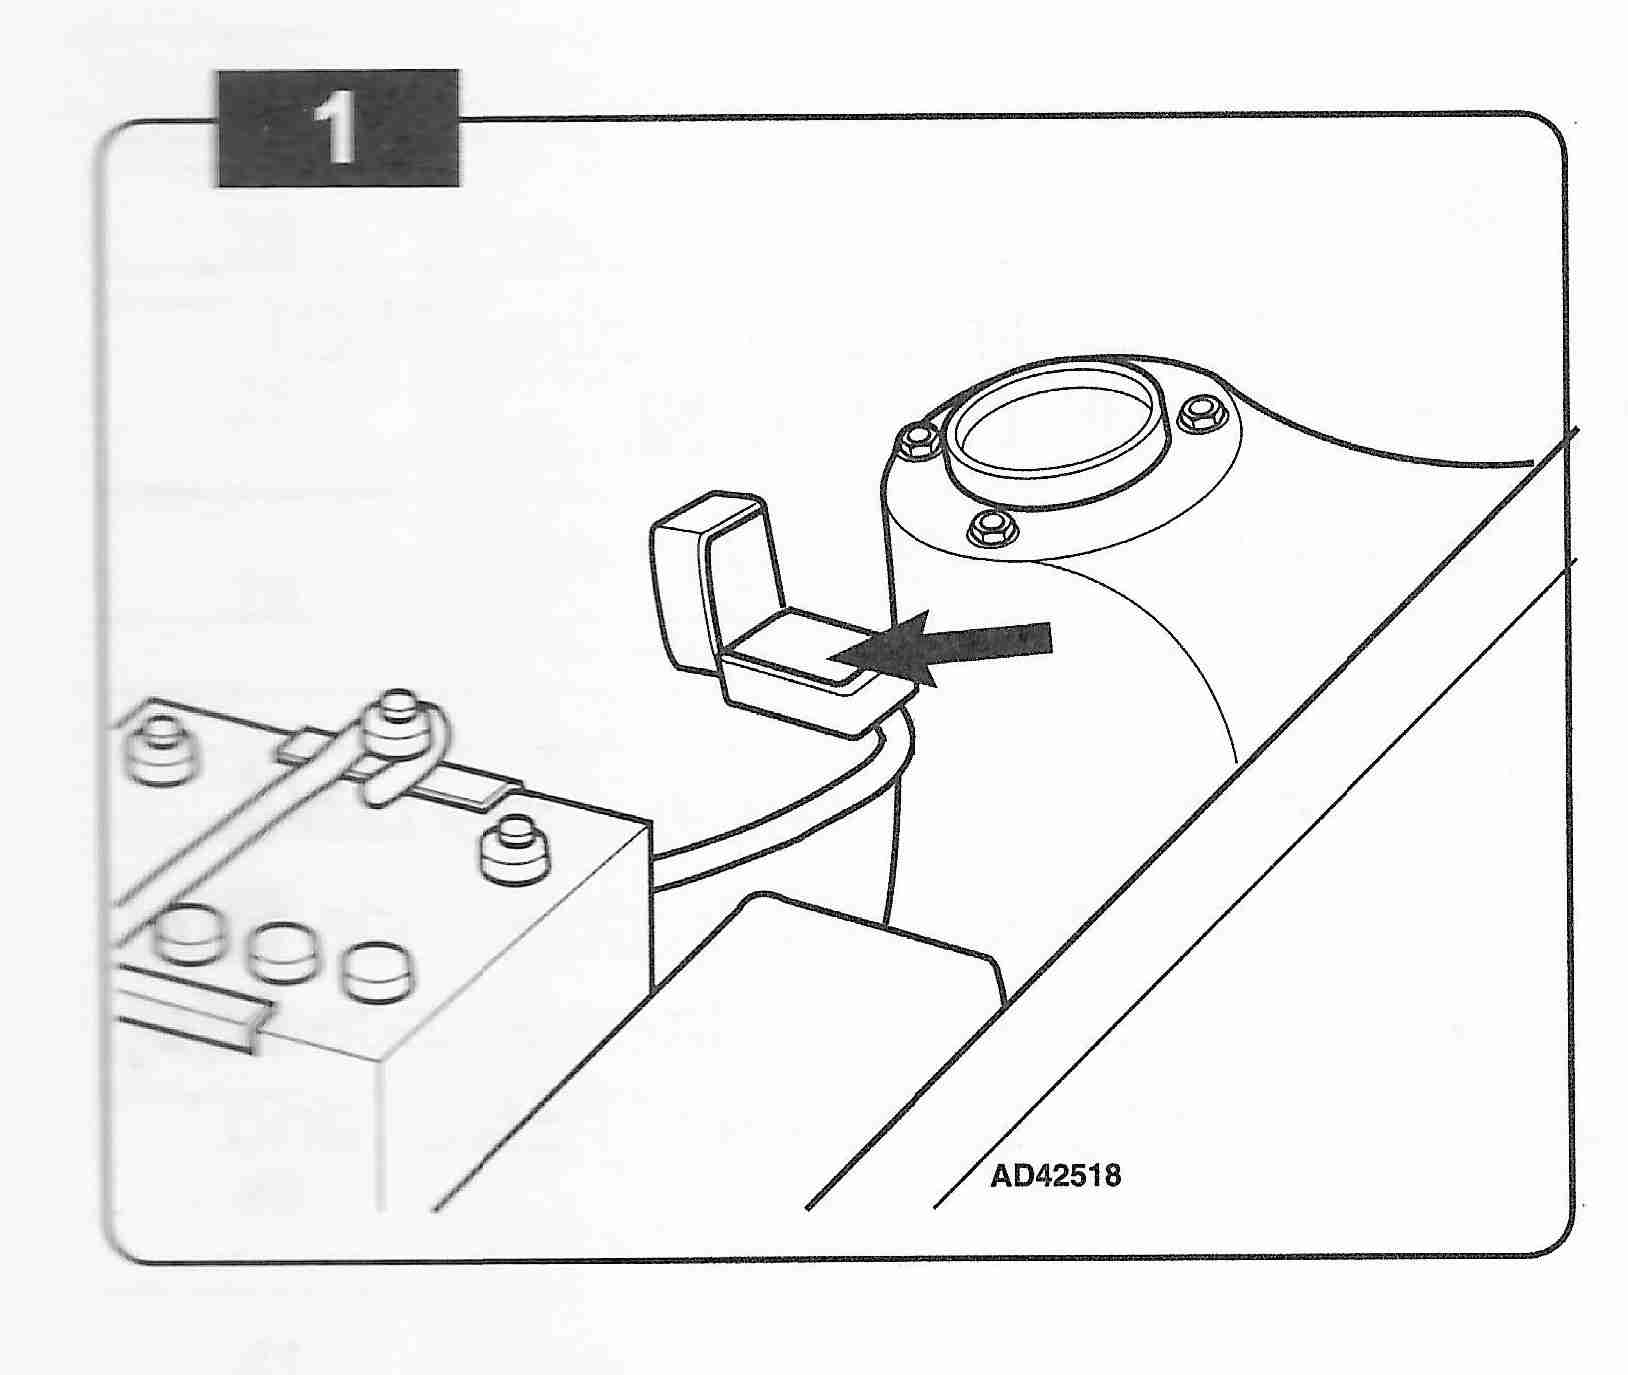 91 Miata Fuse Panel Diagram Simple Guide About Wiring Mazda 1990 Box Also 93 Honda Del Sol 2003